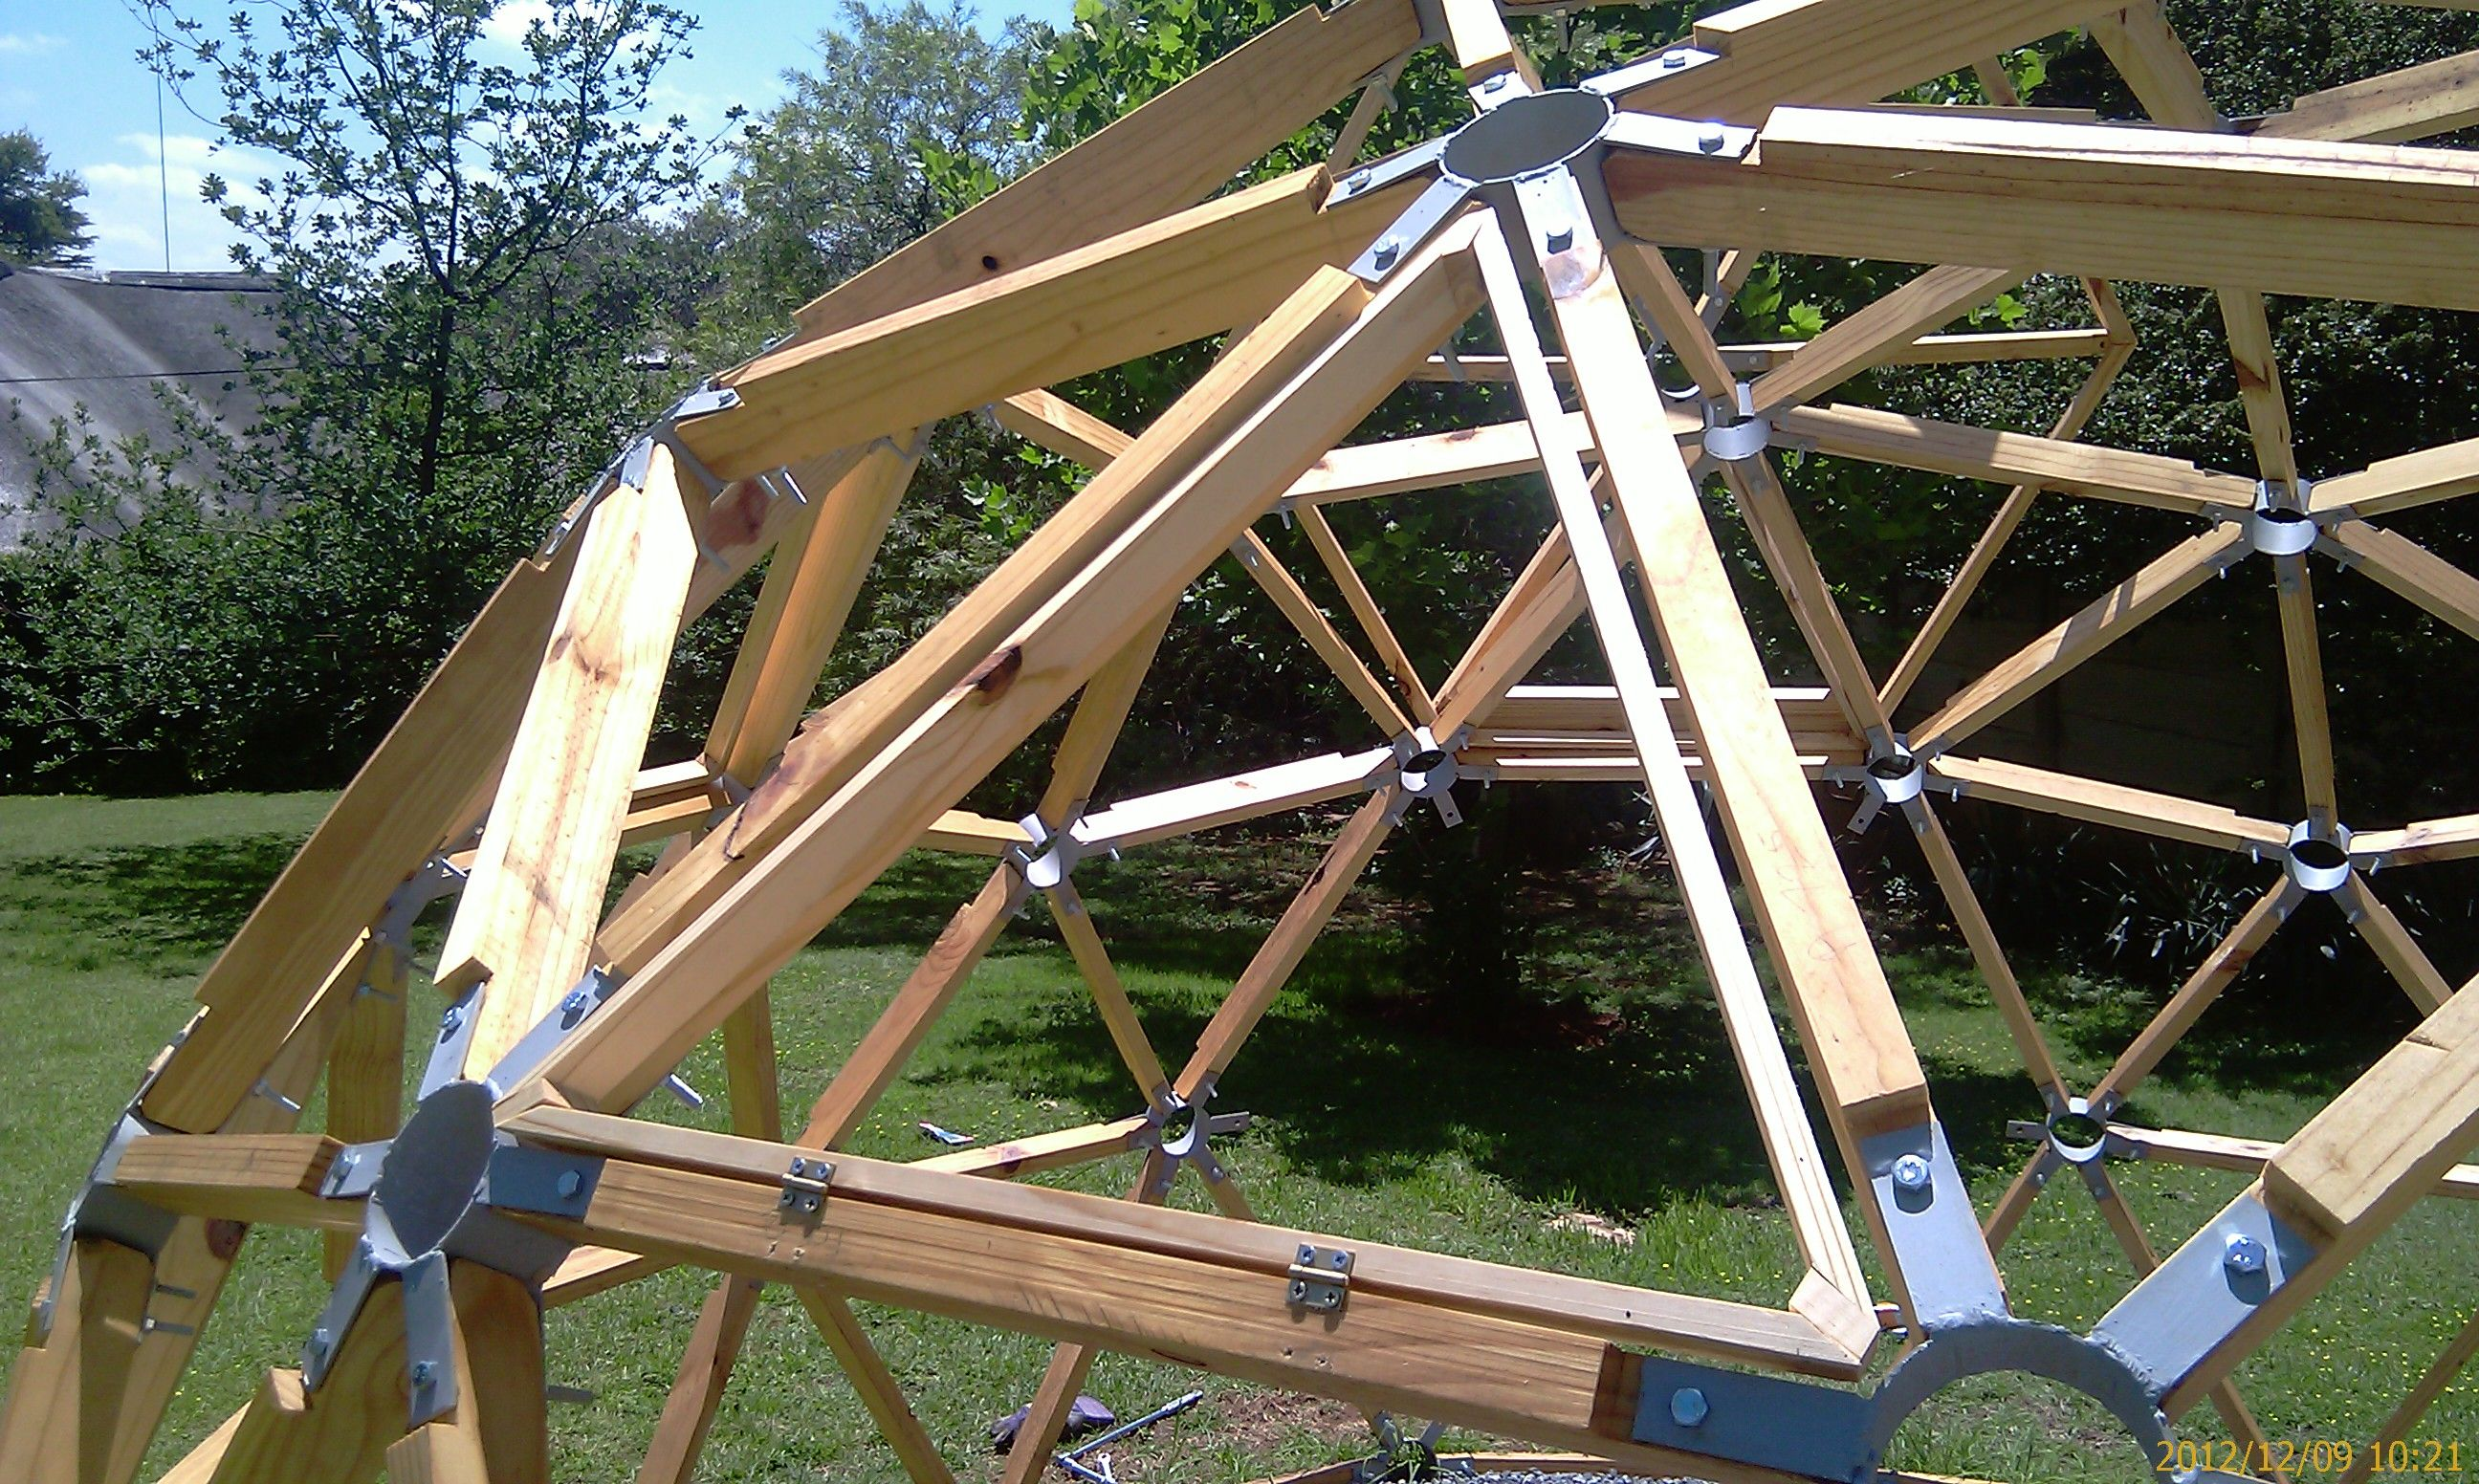 e16436e9c7fadd231272d214857b51d5 Greenhouse Plans Geodesic Dome Connectors on homemade pvc greenhouse plans, geodesic dome greenhouse covering, geodesic dome floor plans, geodesic dome playground plans, geodesic dome greenhouse kits, geodesic dome greenhouse winter, geo dome greenhouse plans, pvc geodesic dome plans, dome home kits and plans, small geodesic dome plans,